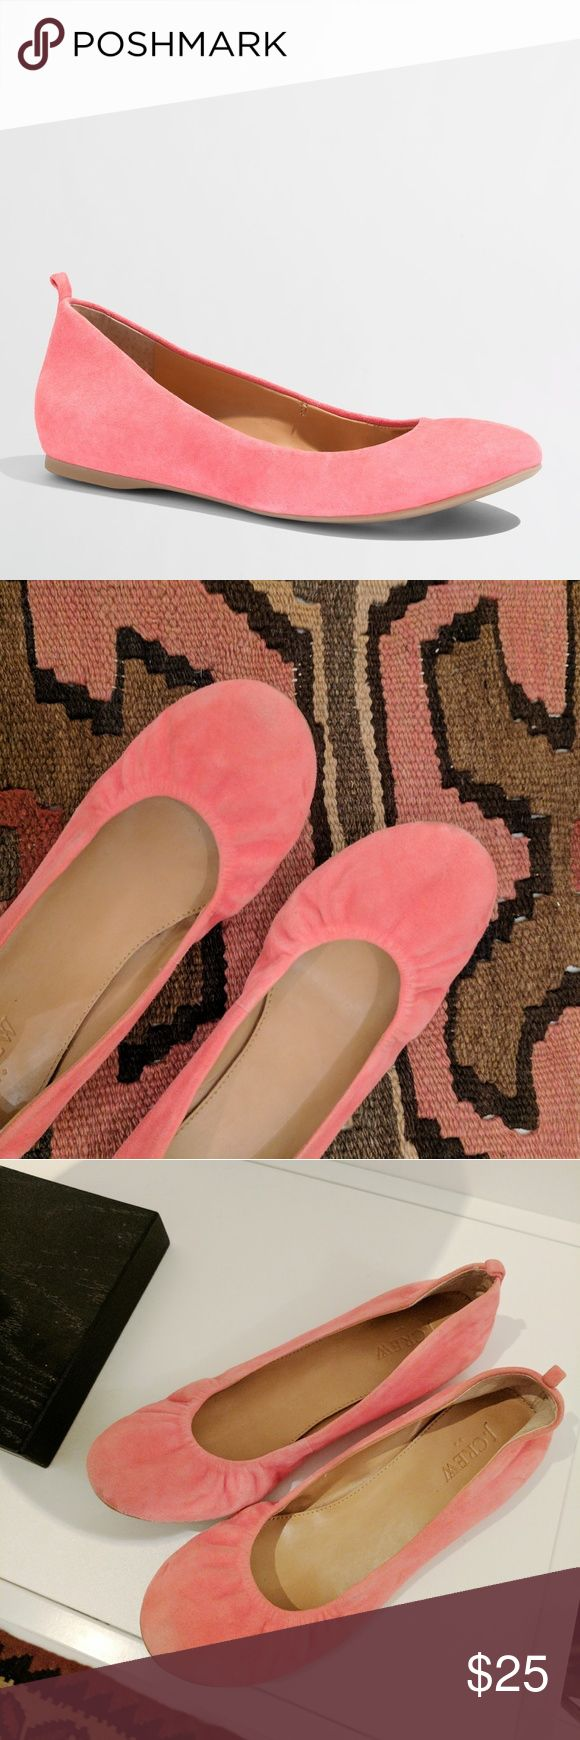 J.Crew Suede Ballet Flats Bright pink ballet flats worn only a few times and in great condition. Super comfy with a cushioned leather insole. First image from J.Crew is best for color reference. J. Crew Shoes Flats & Loafers